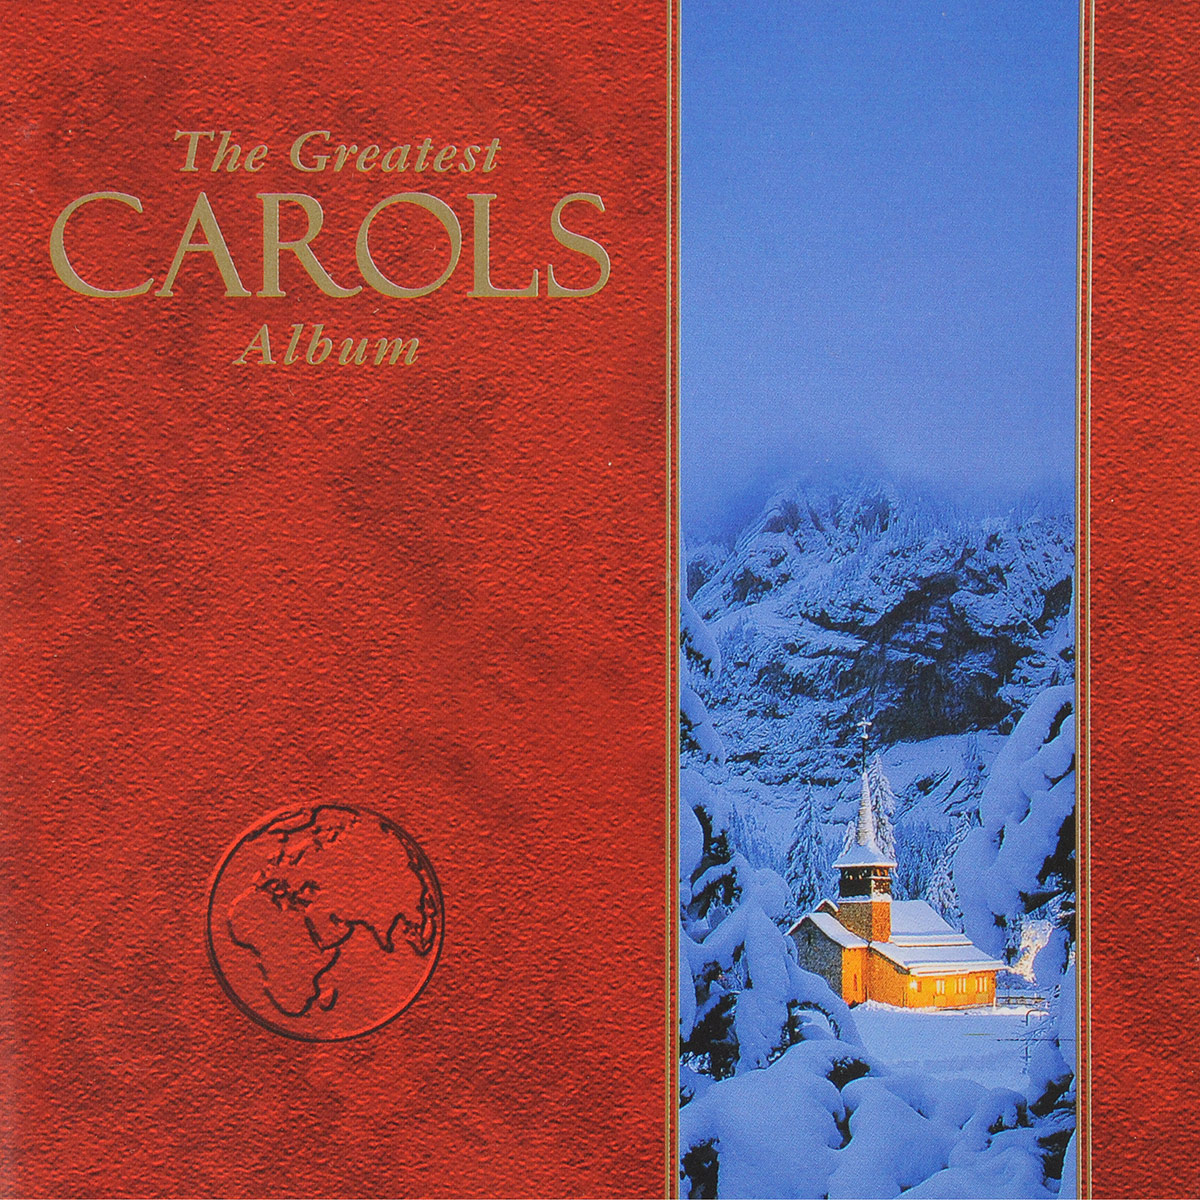 VARIOUS ARTISTS. THE GREATEST CAROLS ALBUM виниловая пластинка various artists john morales presents the m